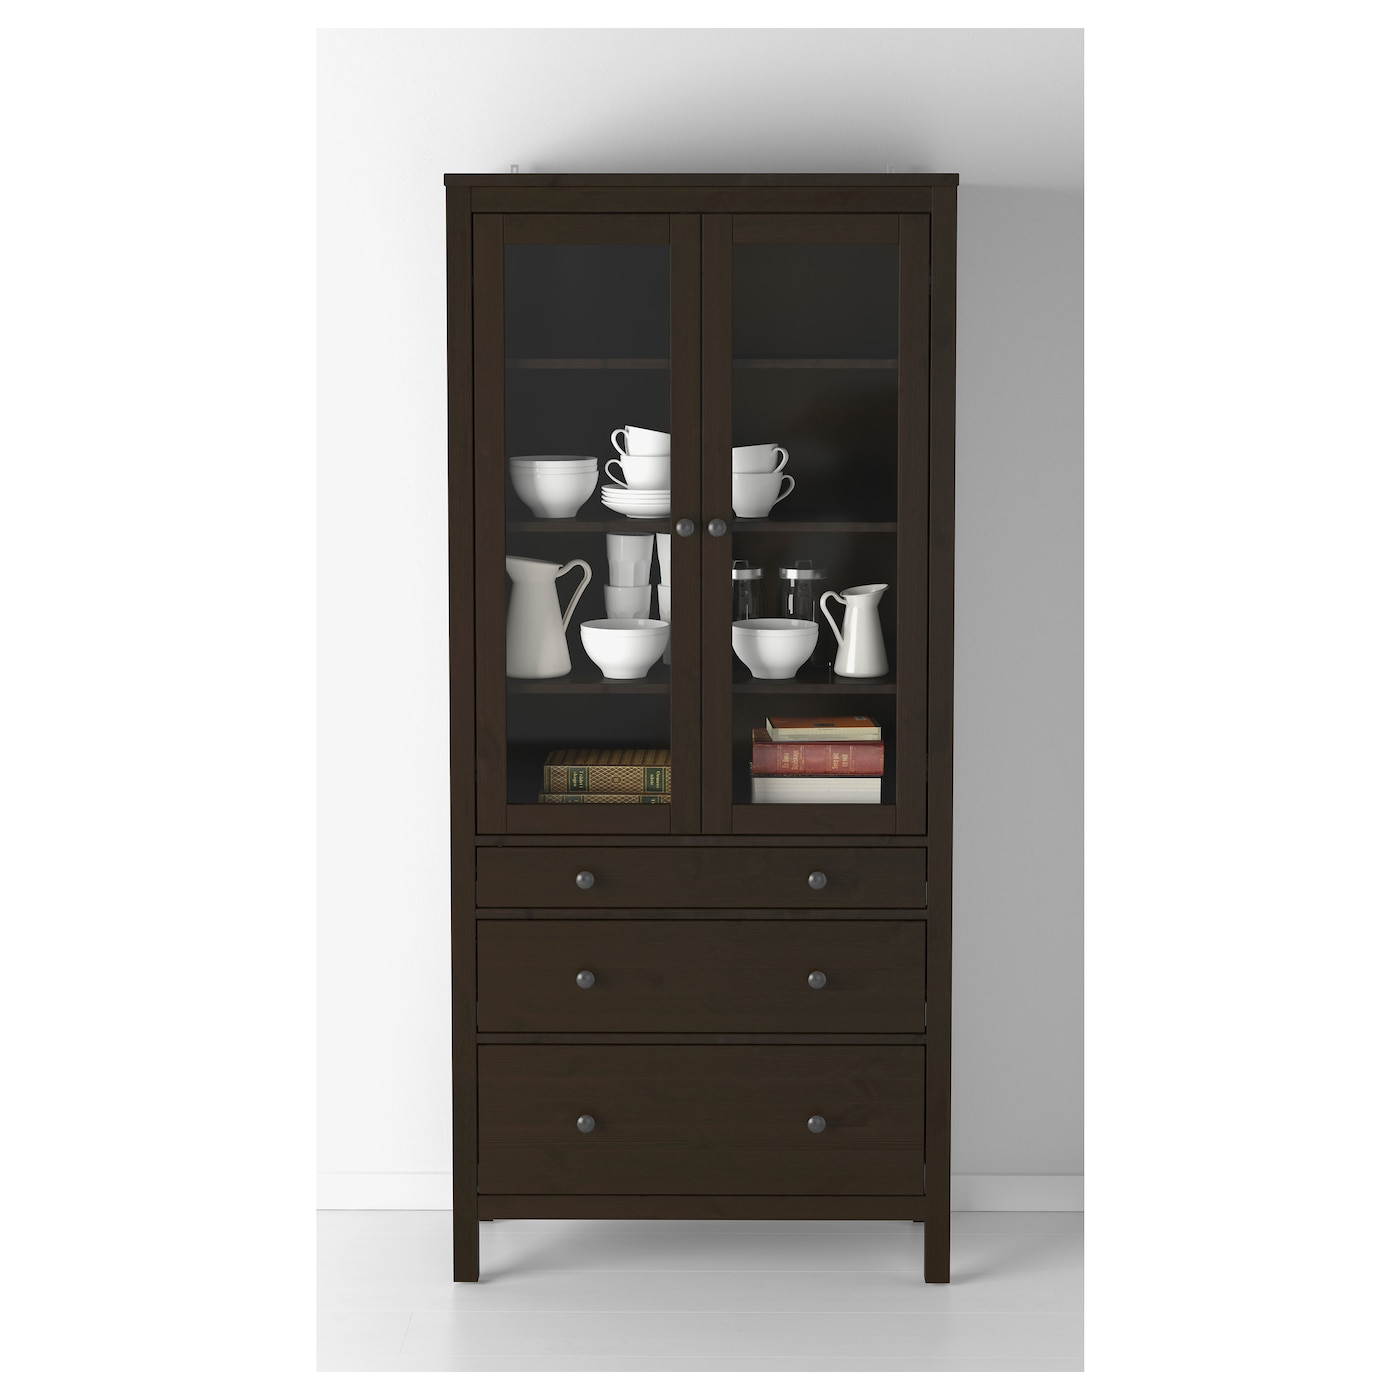 ikea hemnes glass door cabinet with 3 drawers solid wood has a natural